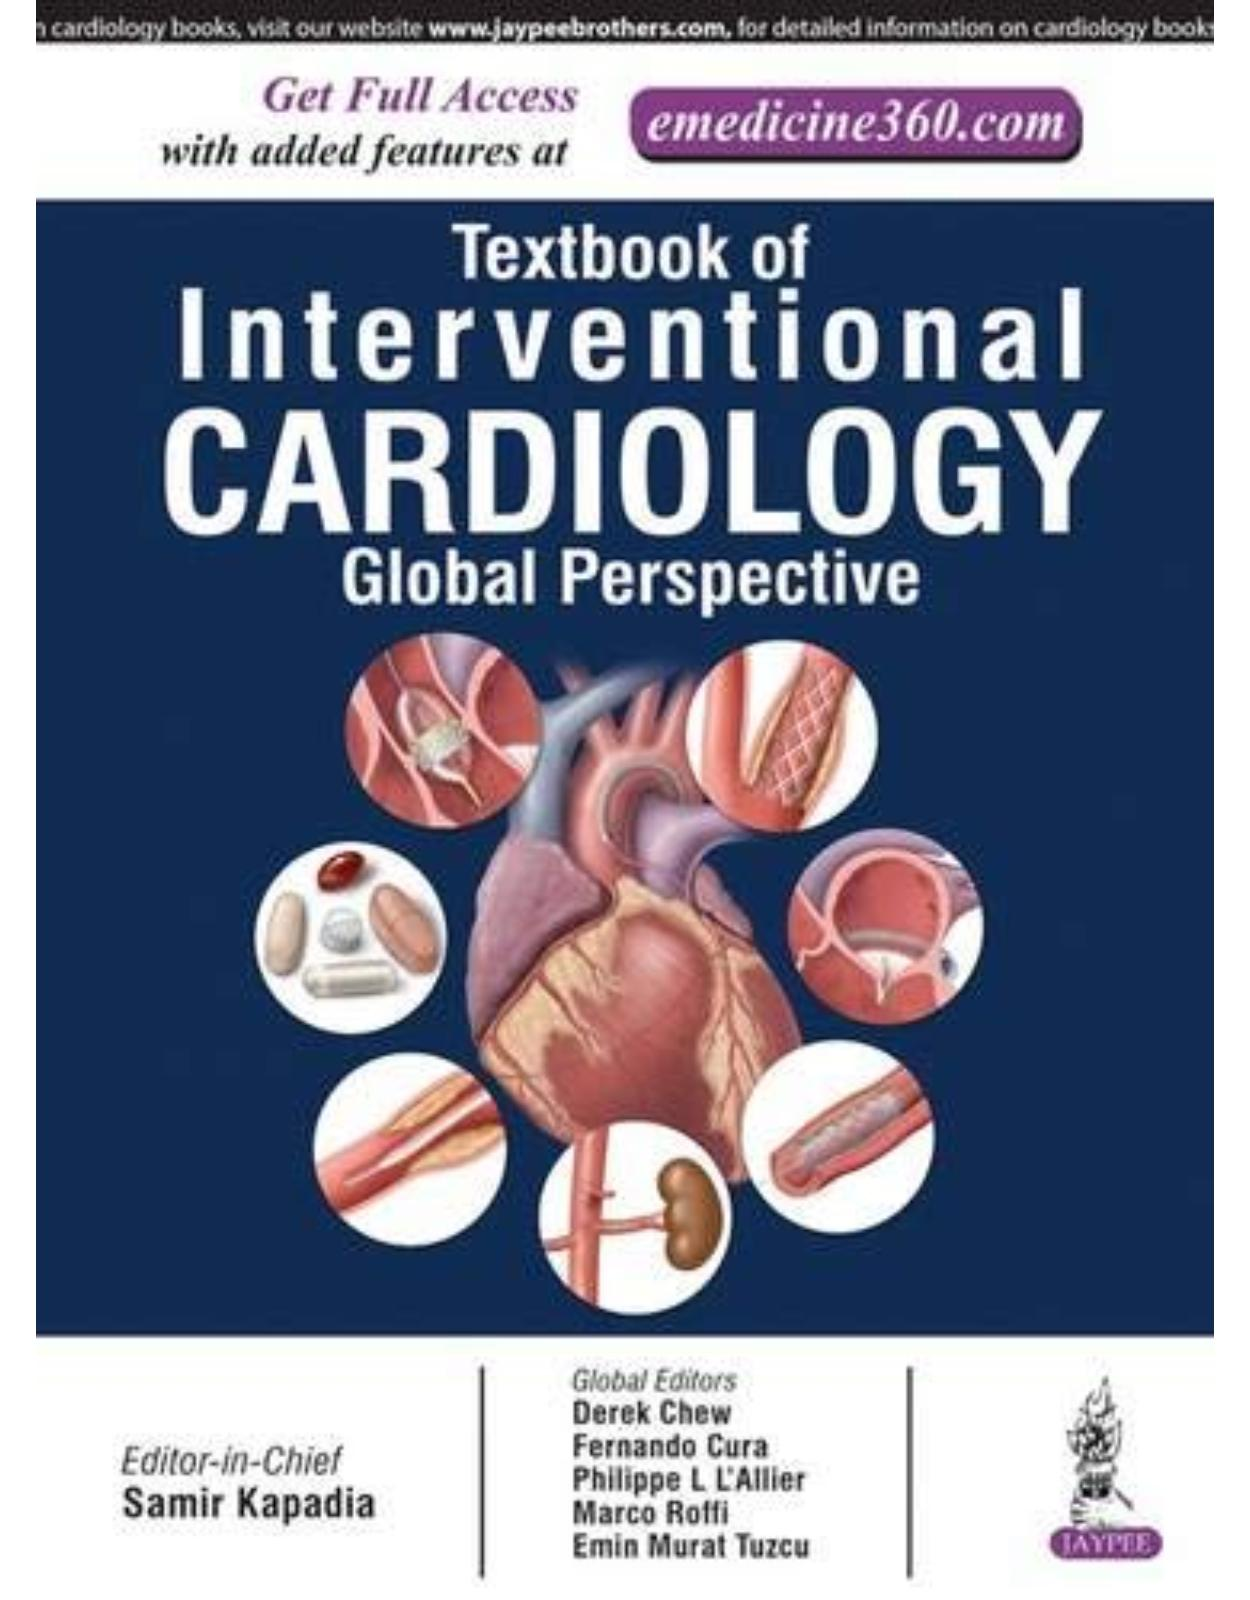 Textbook of Interventional Cardiology: Global Perspective